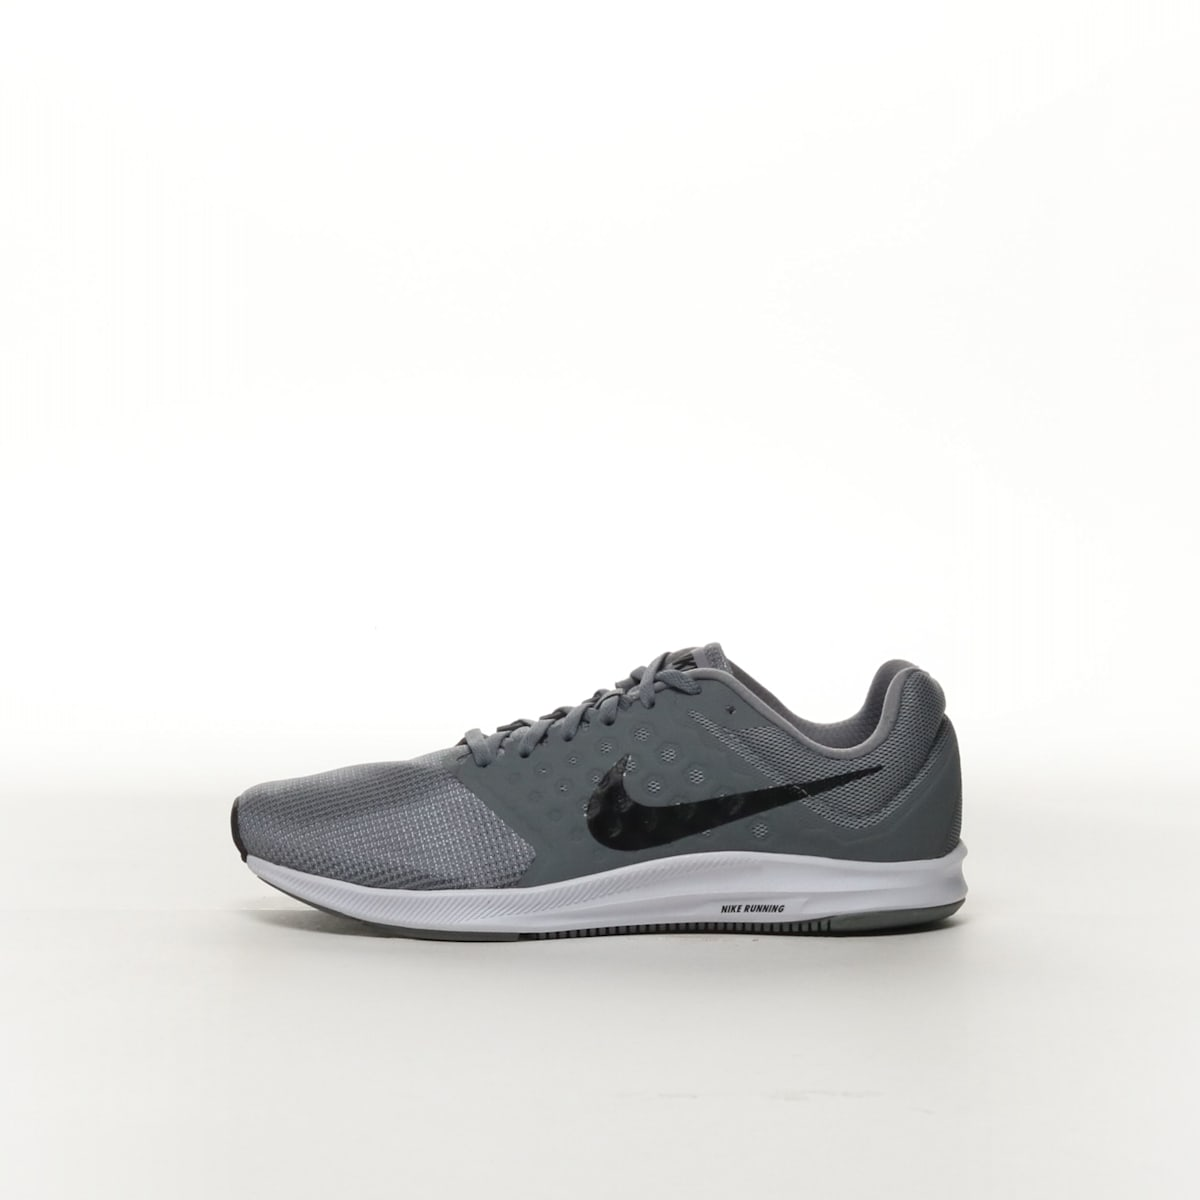 aa69cdbee661 Men s Nike Downshifter 7 Running Shoe - STEALTH BLACK-COOL GREY ...